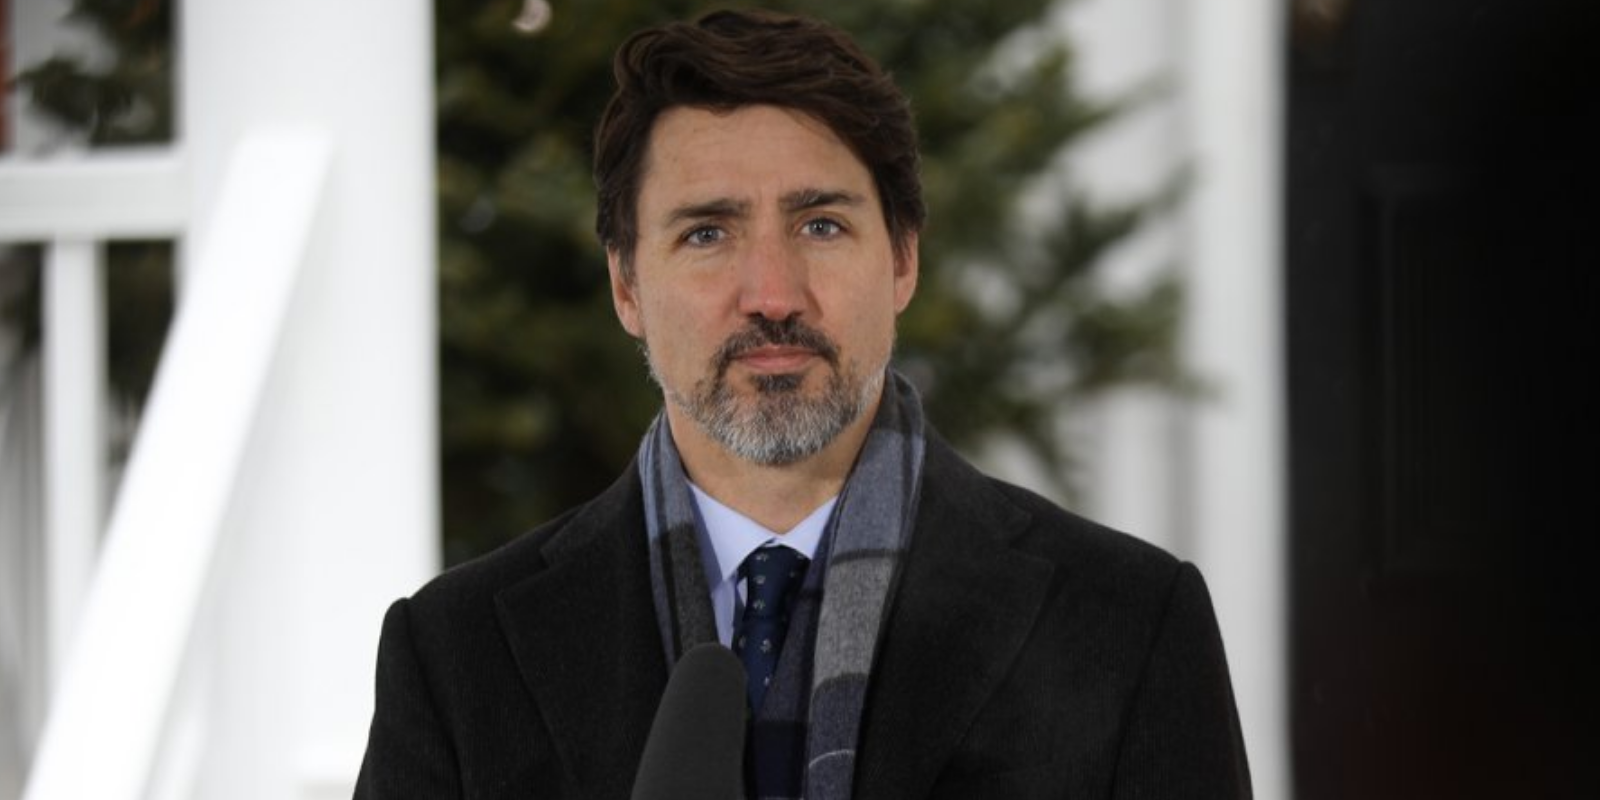 BREAKING: Trudeau refuses to call China's treatment of Uyghurs a 'genocide'